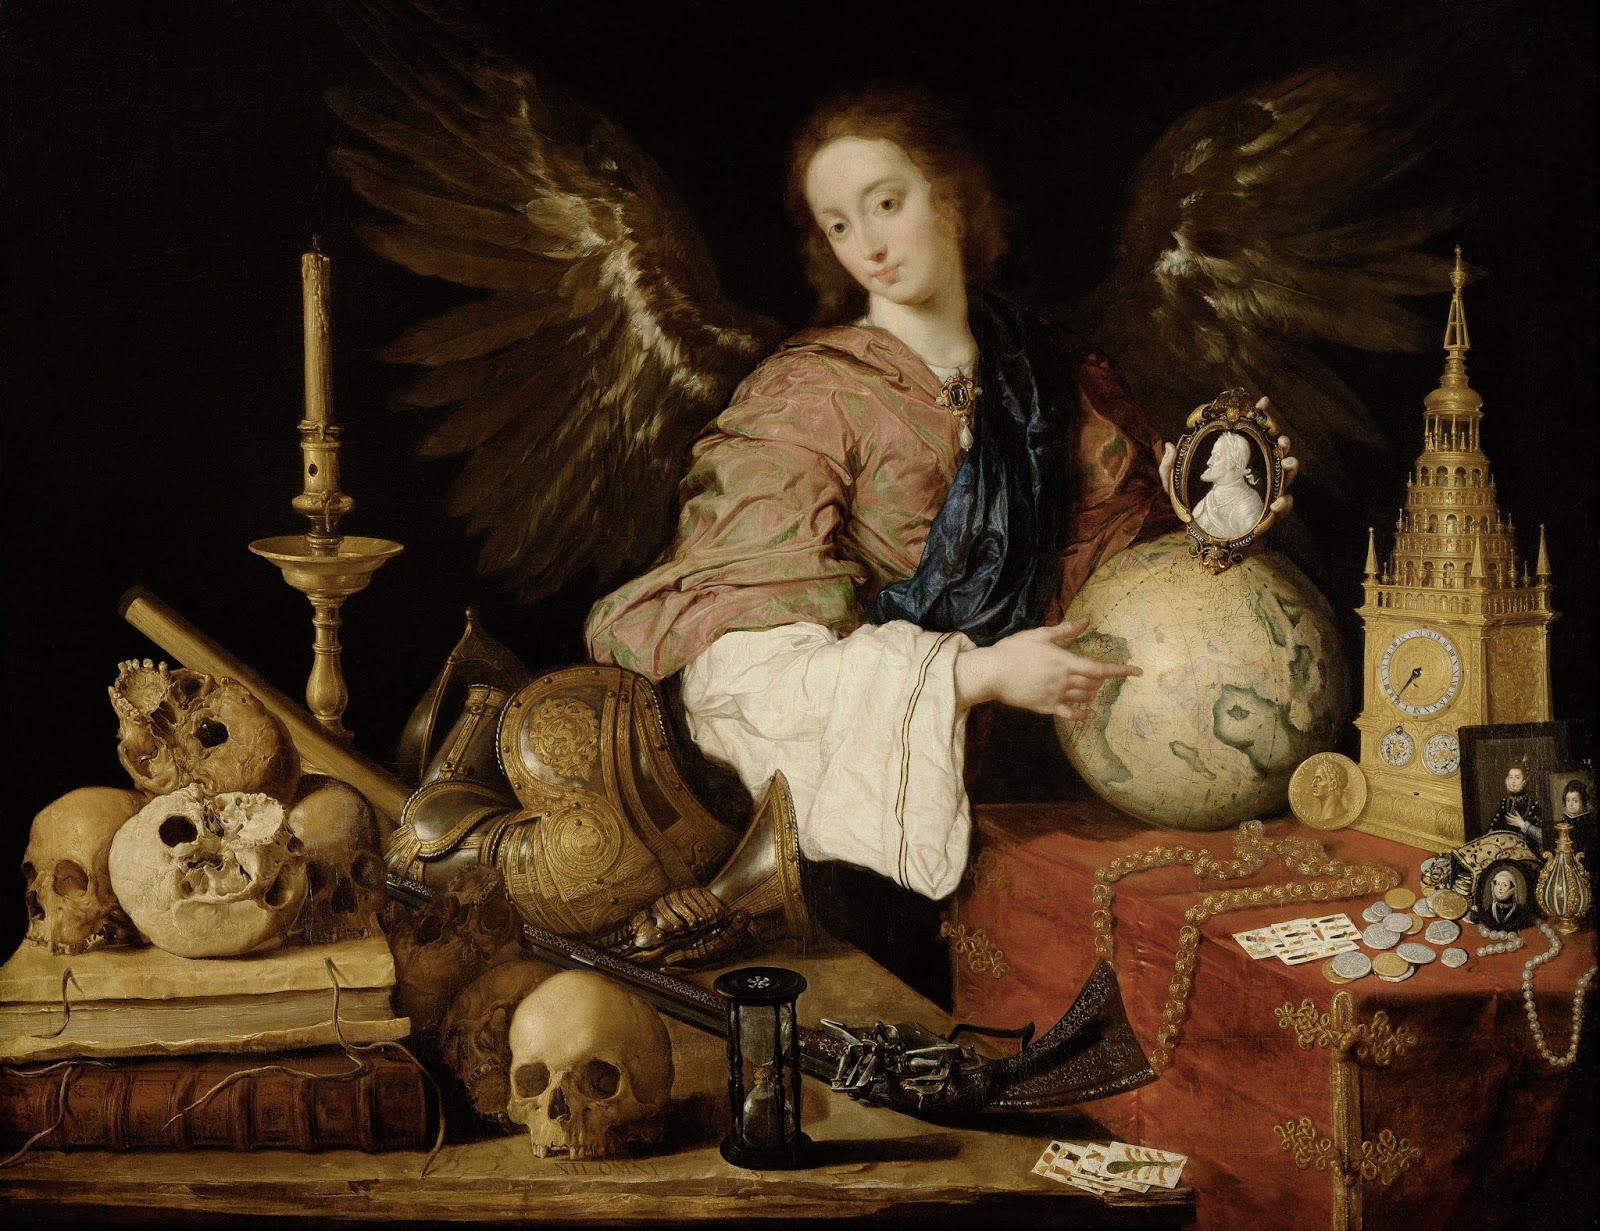 4 Antonio_de_Pereda_-_Allegory_of_Vanity_-.jpg